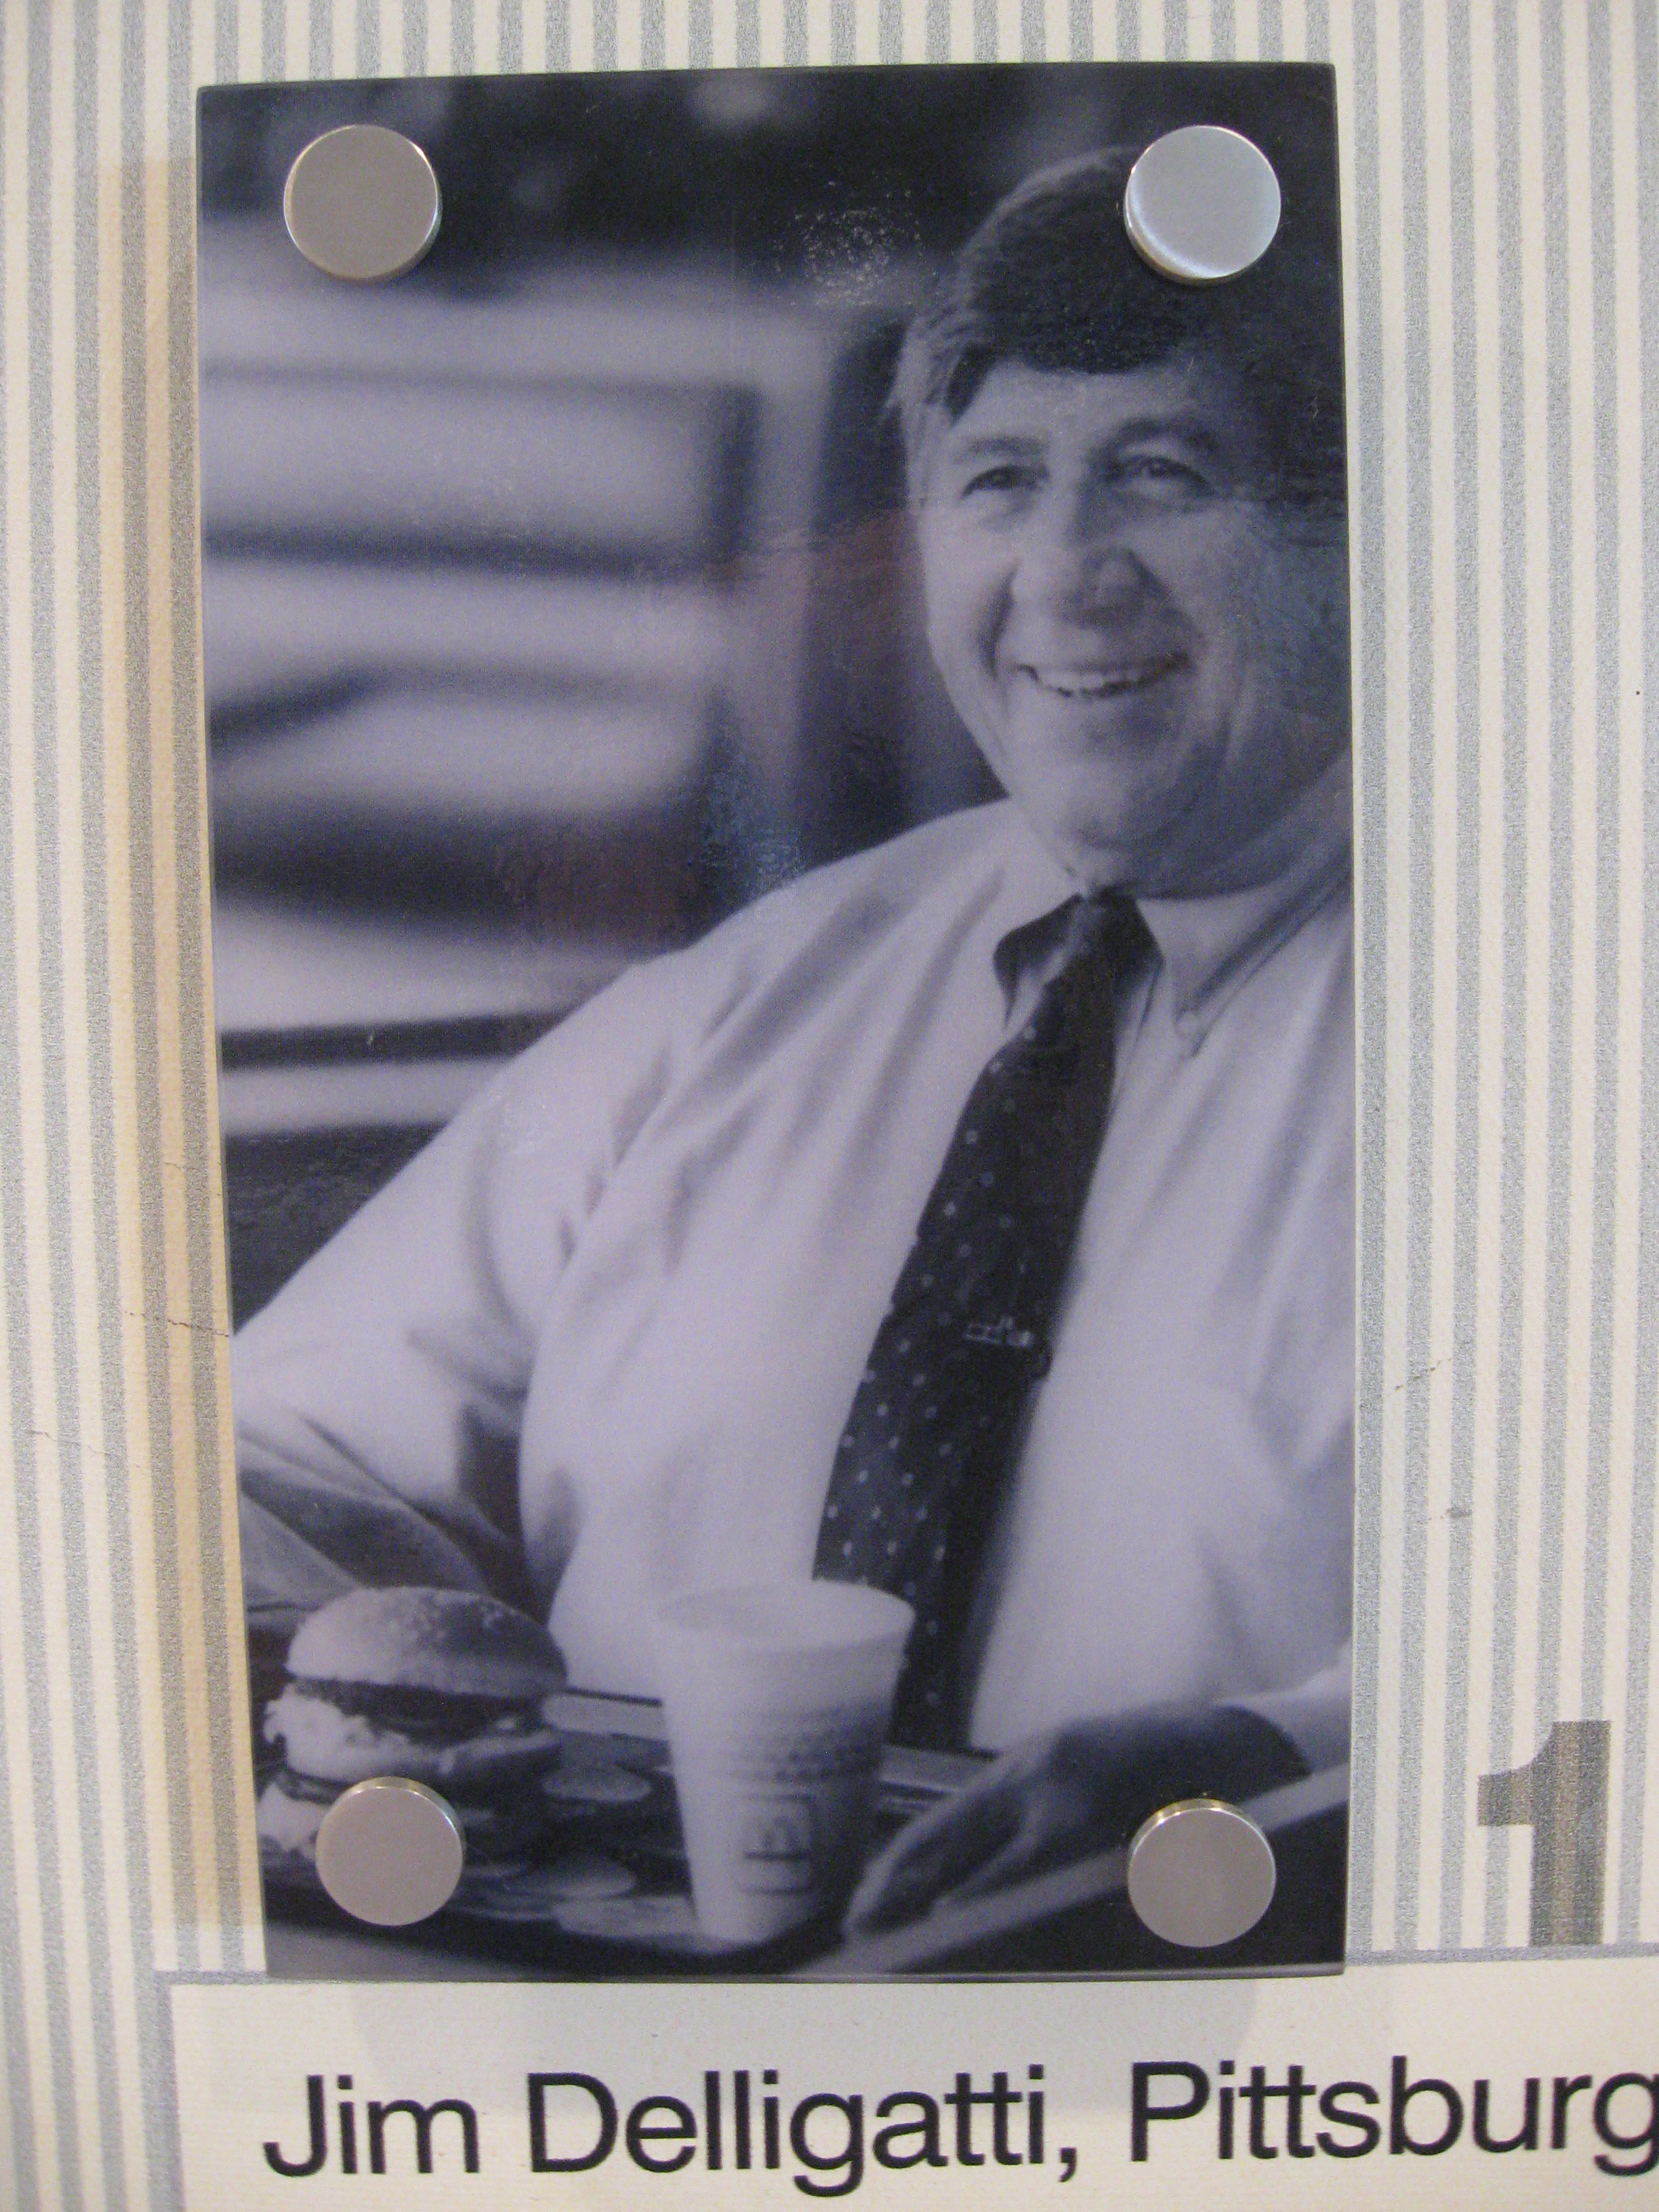 Photo of Jim Delligatti